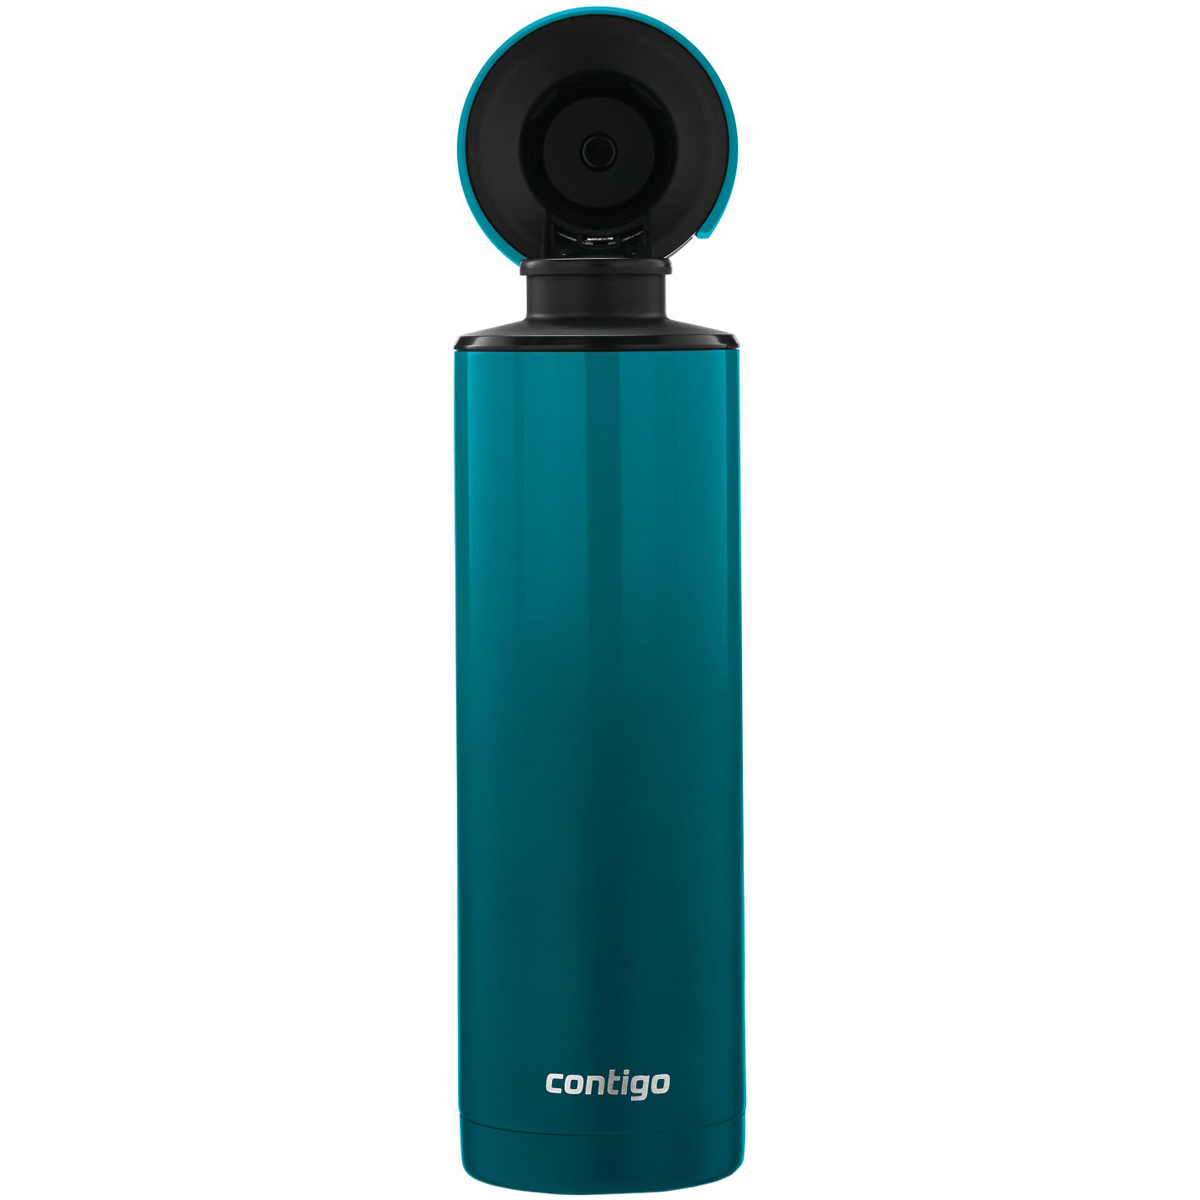 Contigo-24-oz-Evoke-Quick-Twist-Lid-Insulated-Stainless-Steel-Water-Bottle thumbnail 13